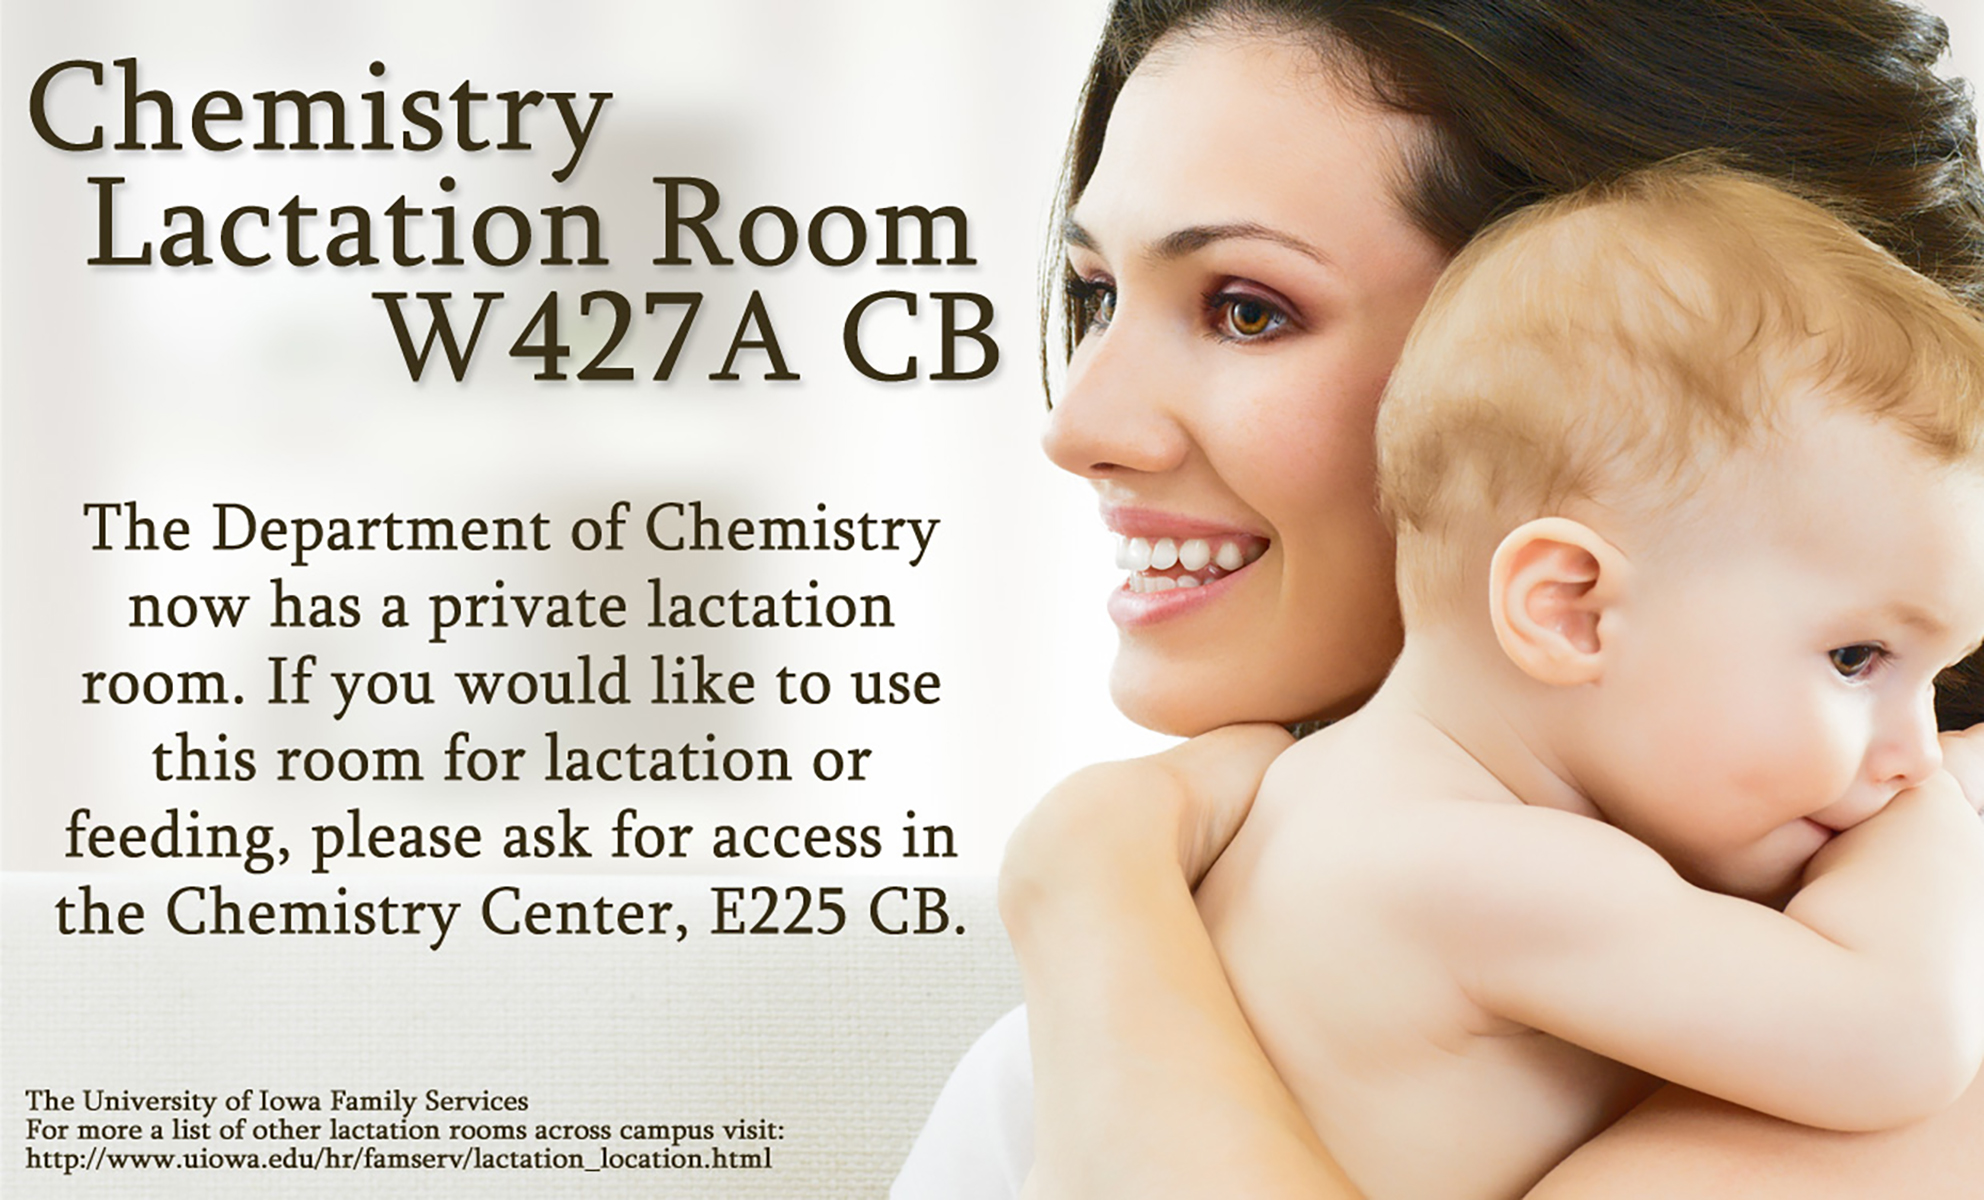 Chemistry Lactation Room is located in W427A CB. The Department of Chemistry now has a private lactation room. If you would like to use this room for lactation or feeding, please ask for access in the Chemistry Center, E225 CB.